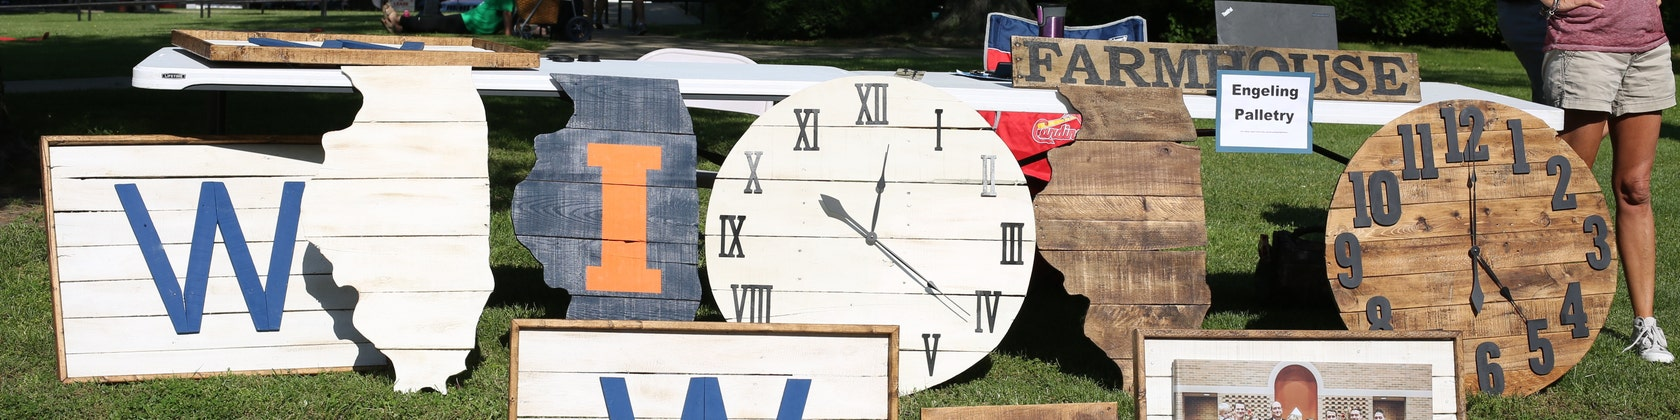 Handmade pallet clocks flags and worded signs von EngelingPalletry